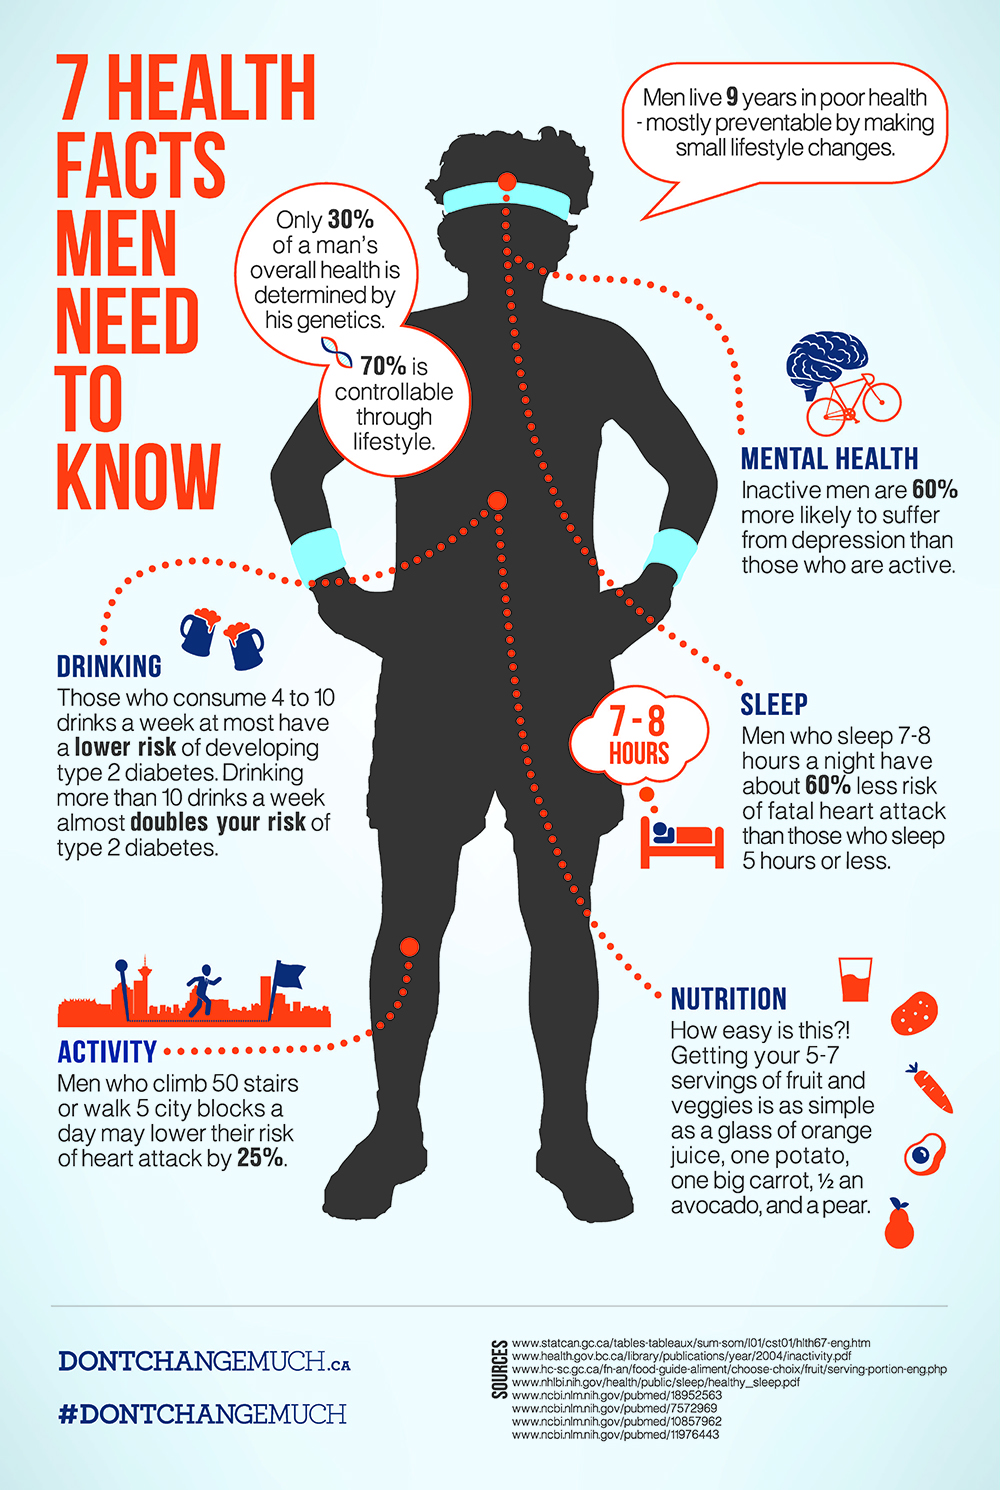 mens health info graphic